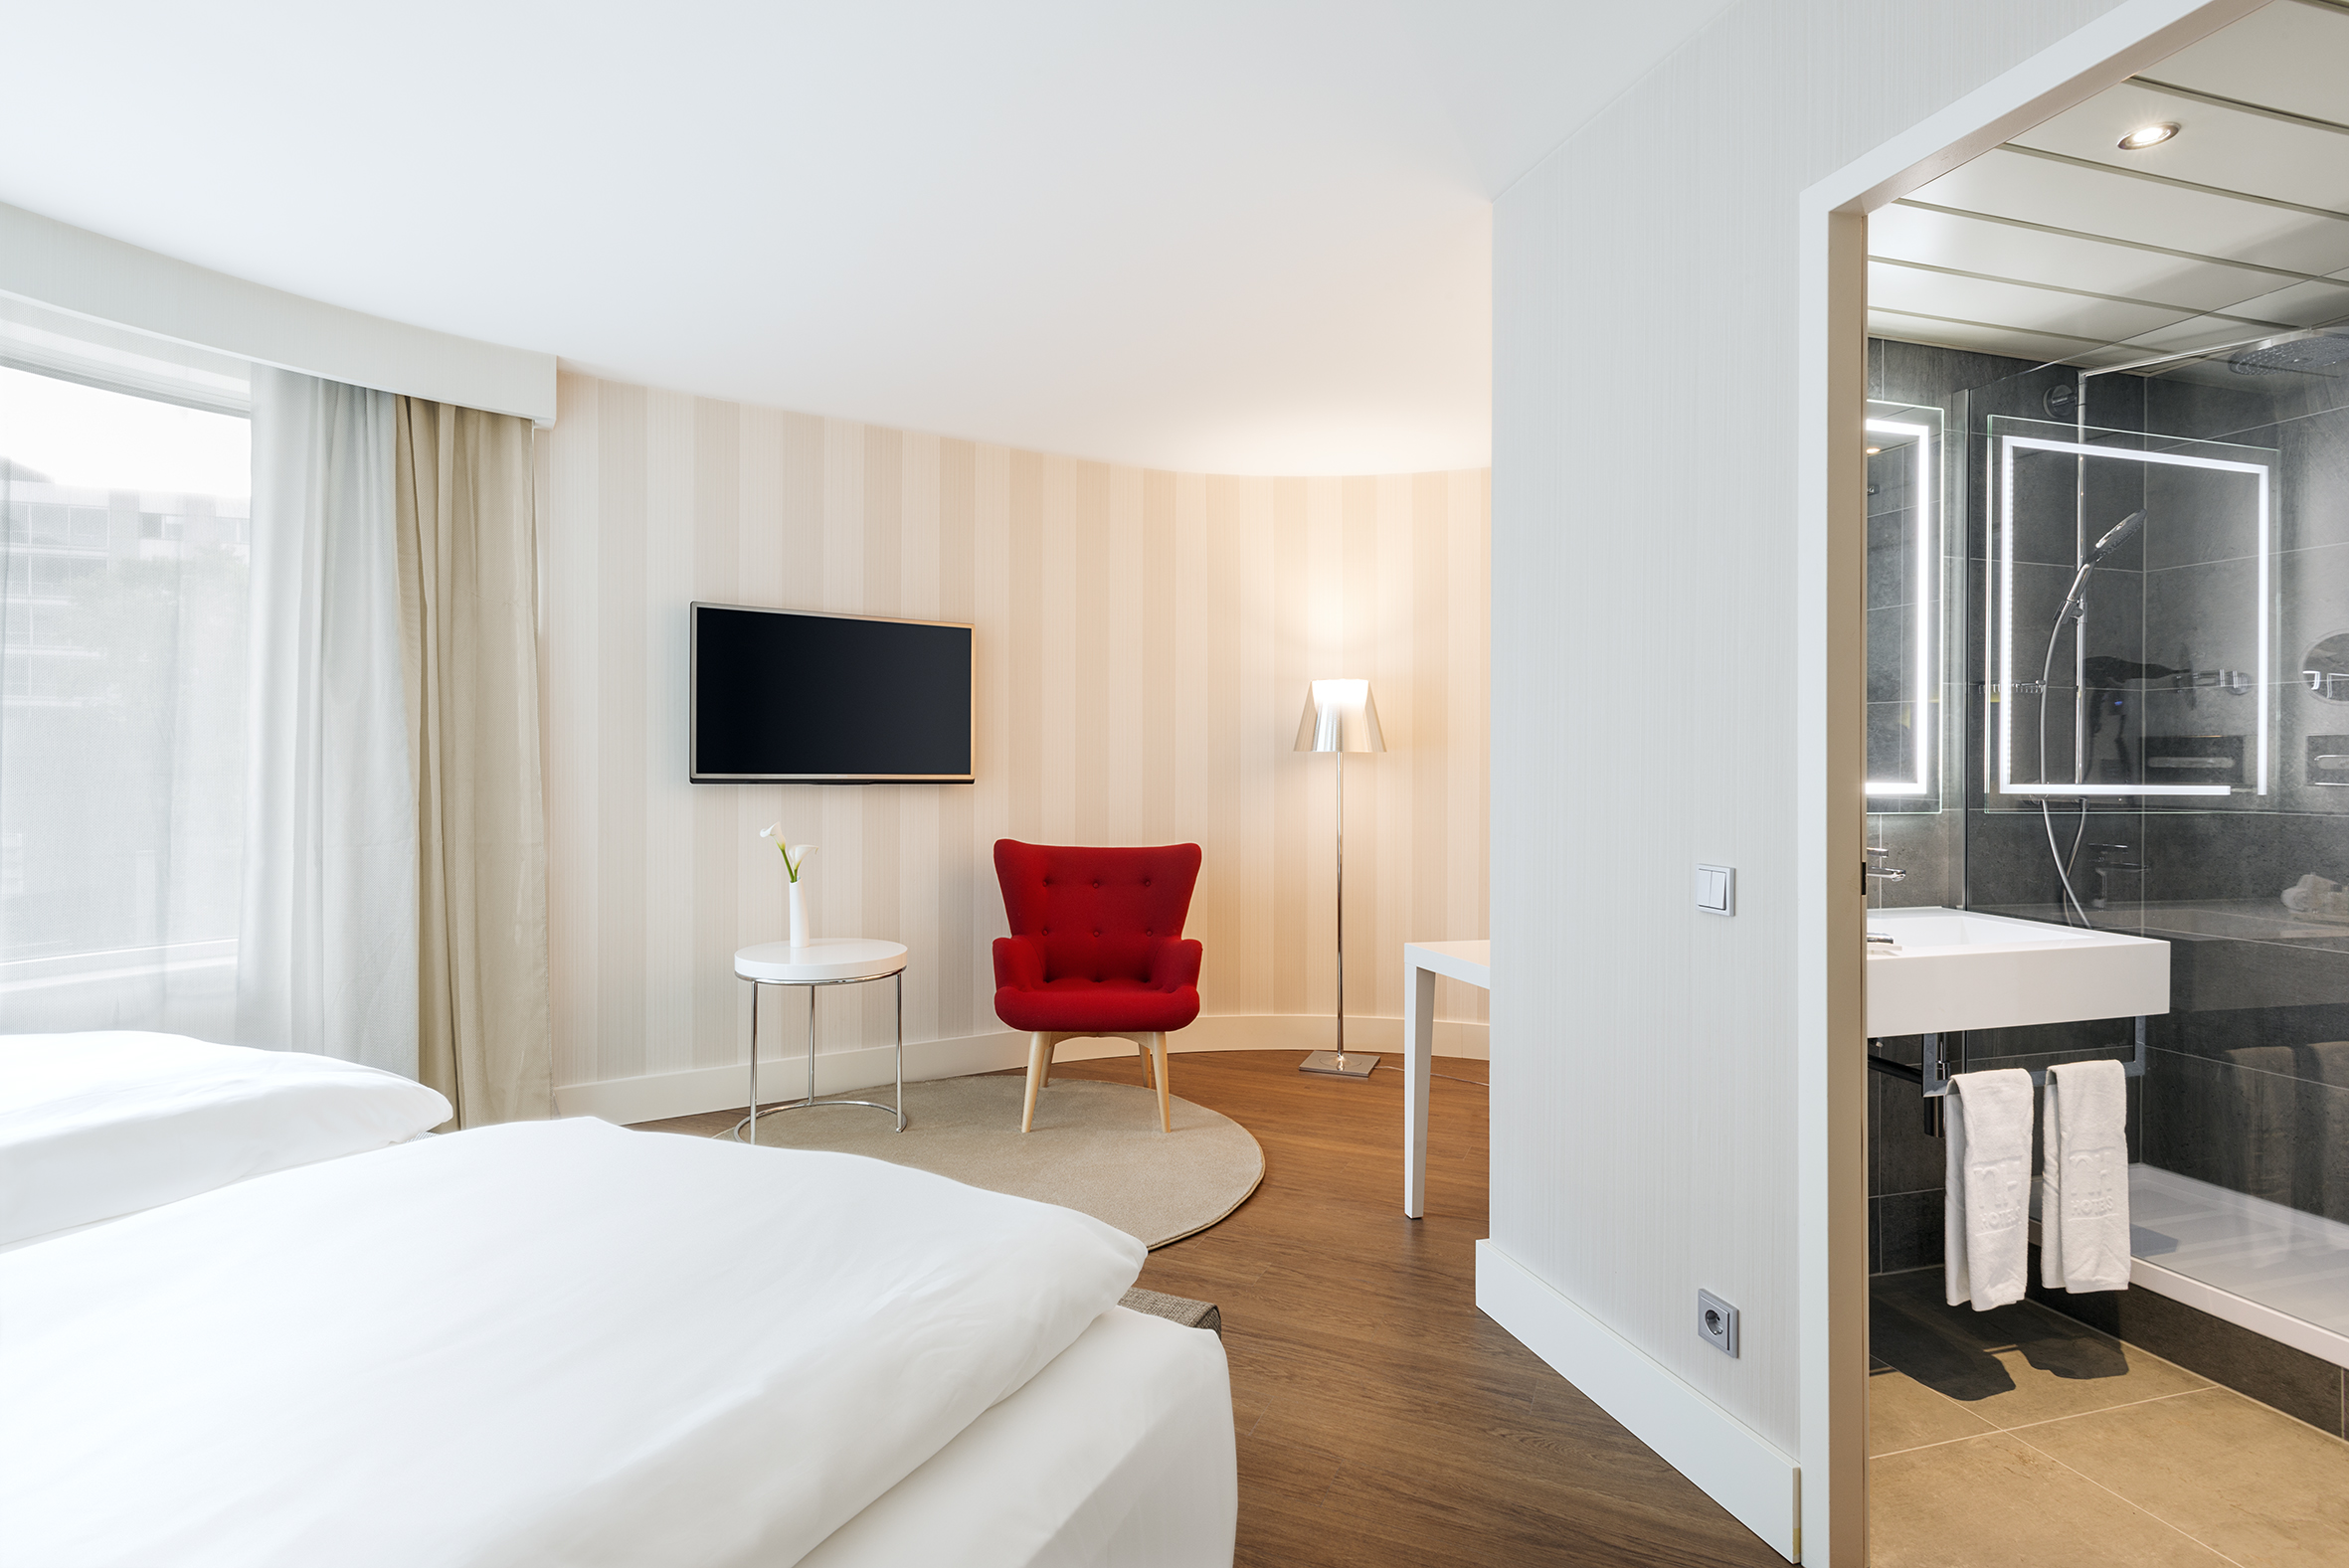 209988 nh%20hotel%20group nh%20collection%20frankfurt%20city  room s da1bad original 1464010667